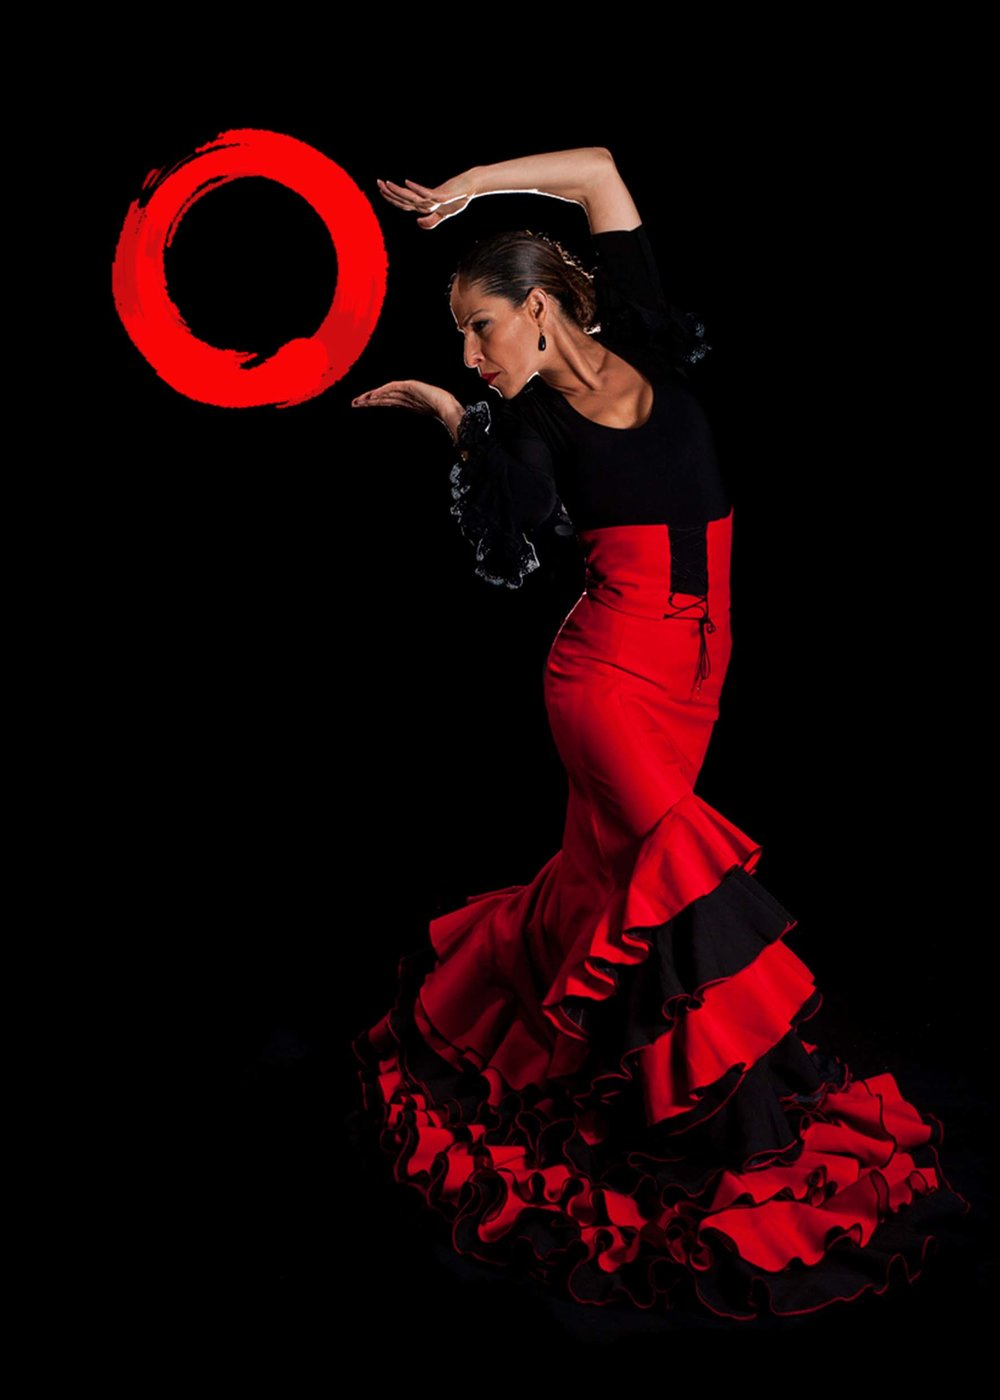 For more on Flamenco, click here!